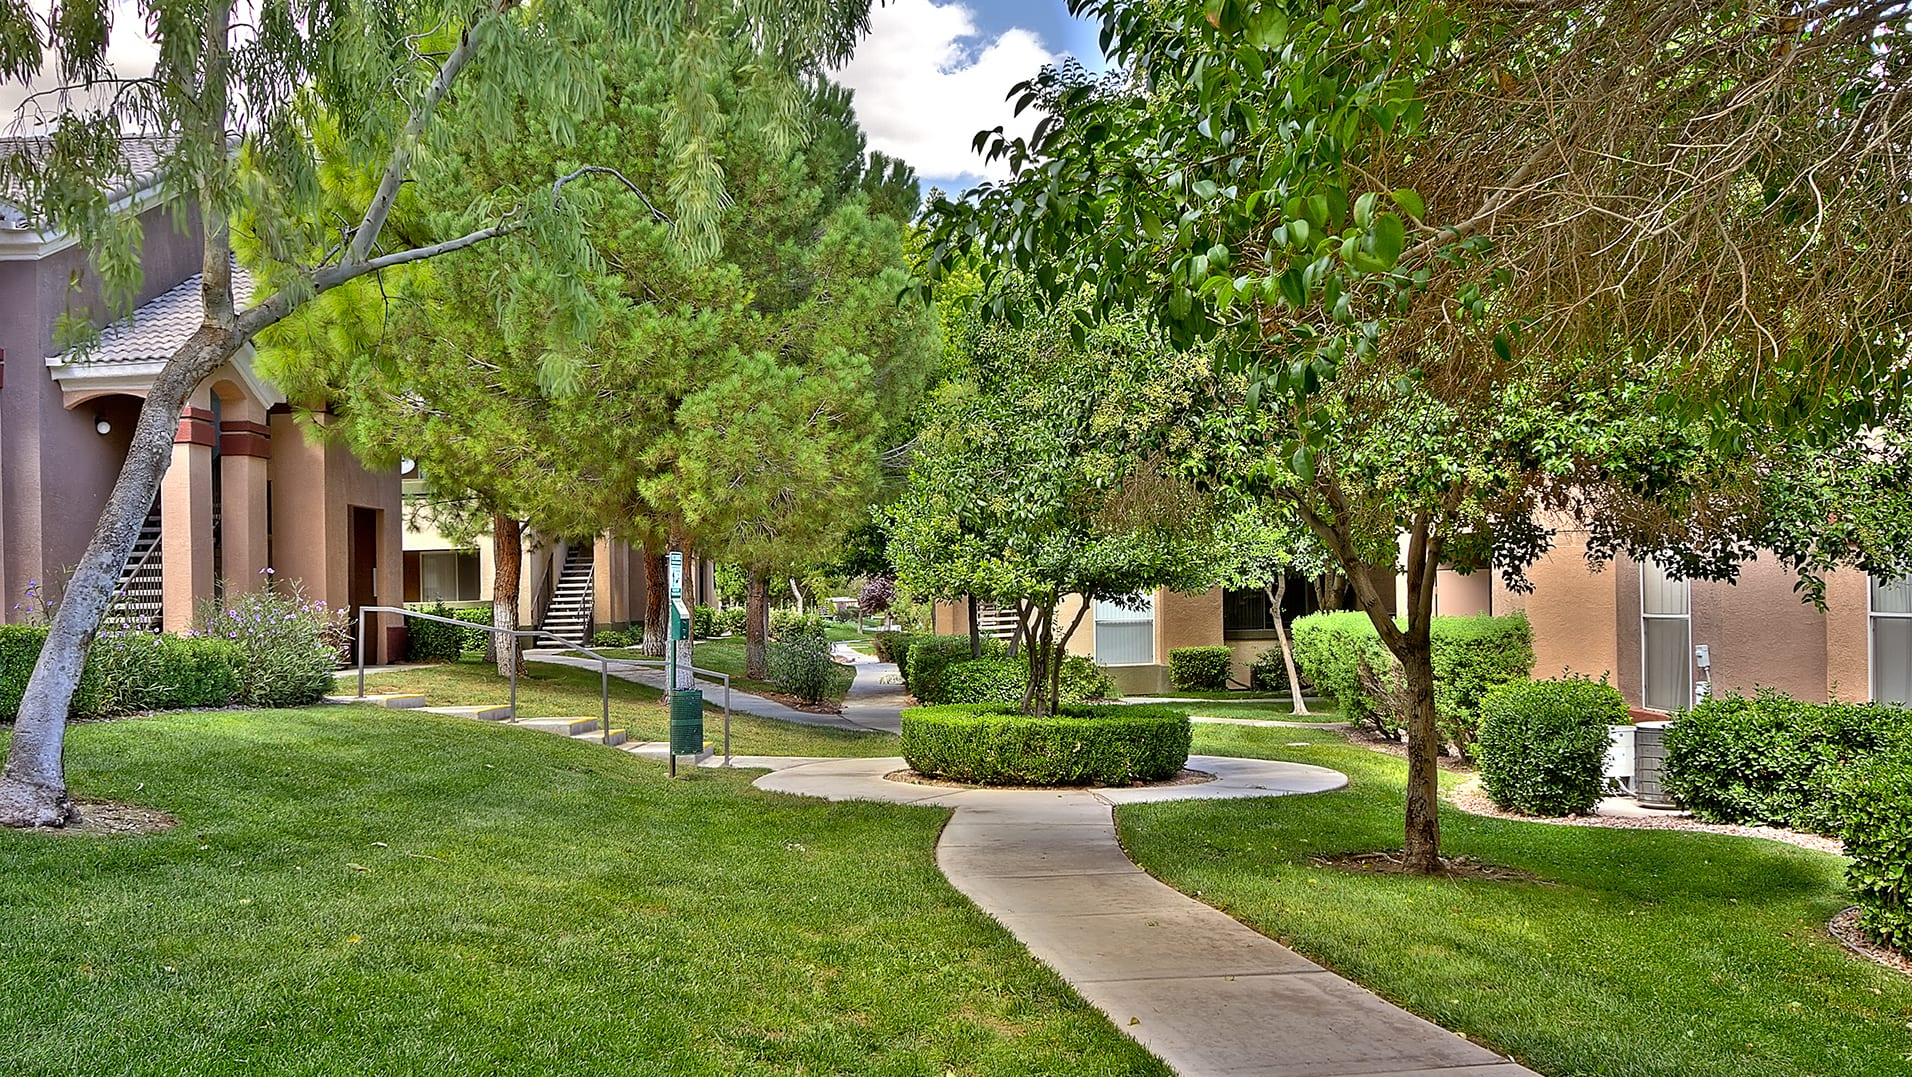 Professional landscaping, dog park area, and paved walkways amidst large trees between apartment buildings.